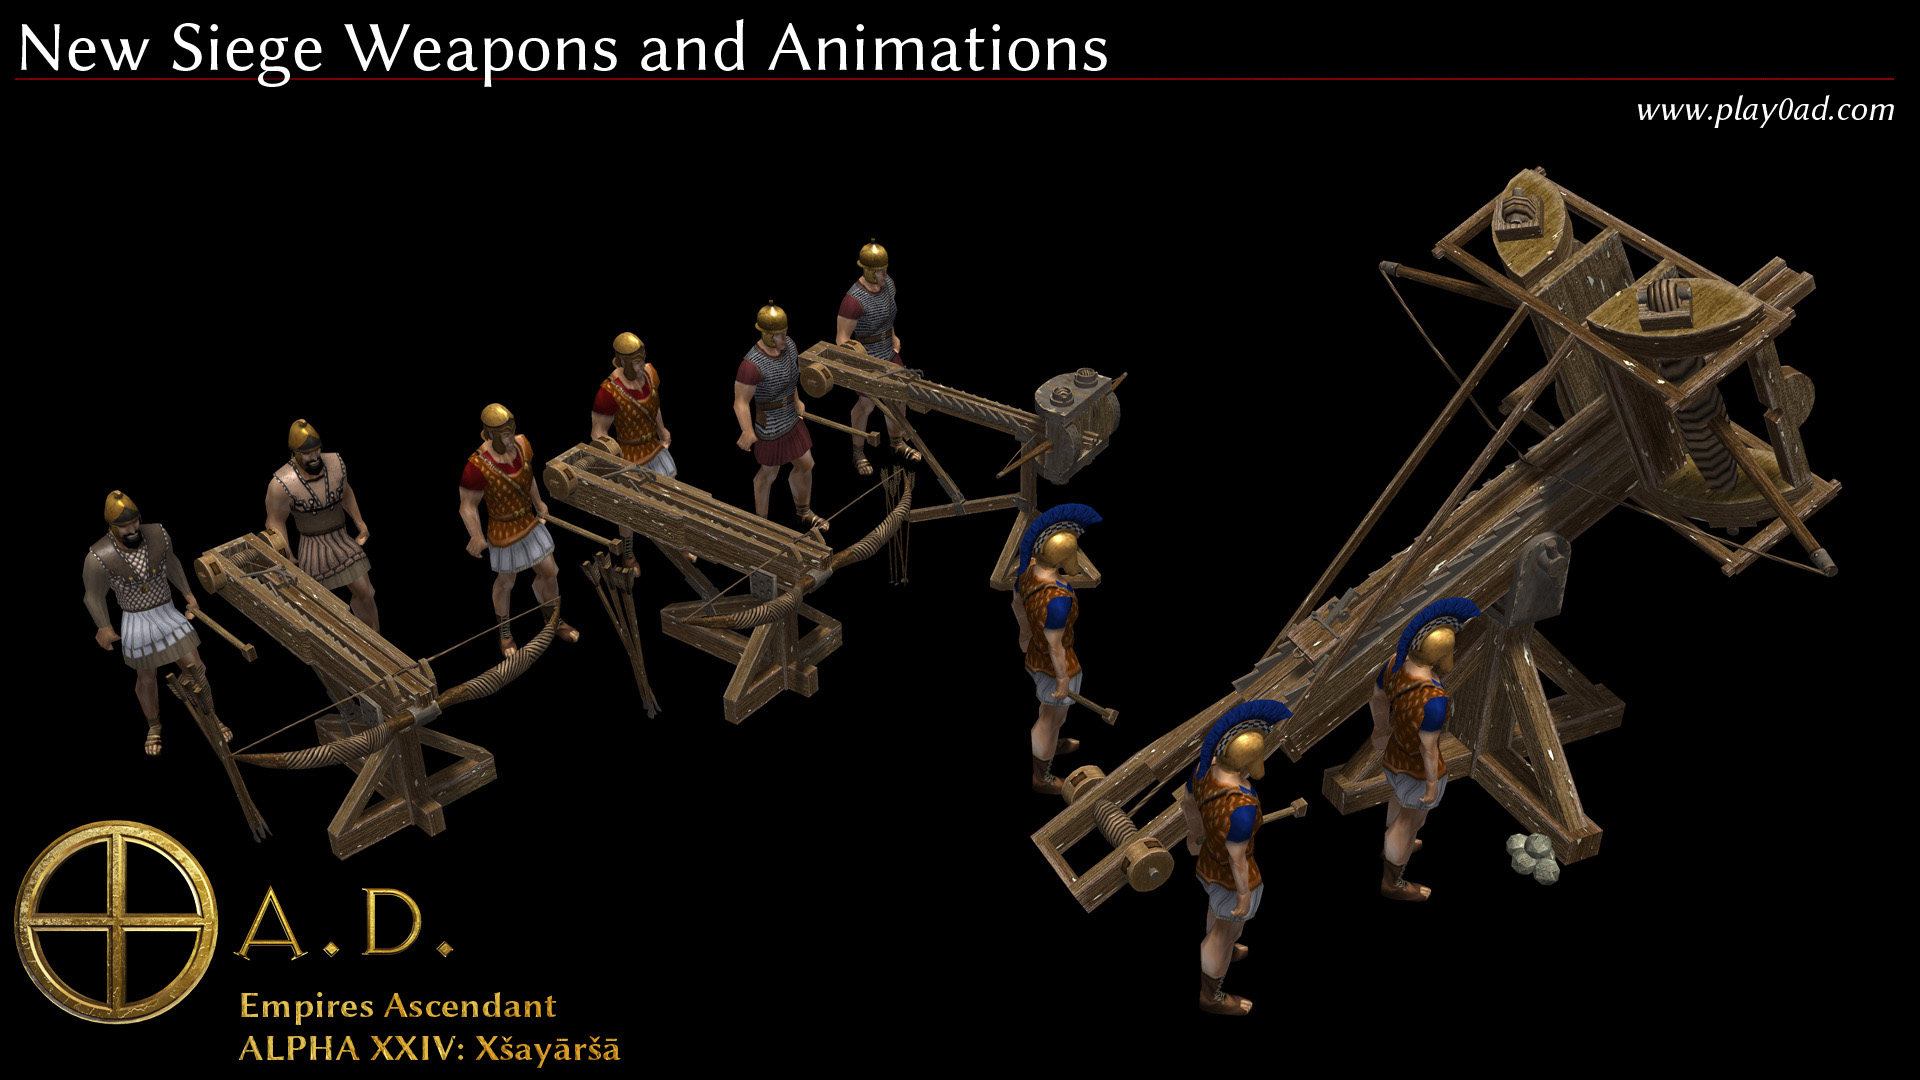 New Siege Weapons and Animations